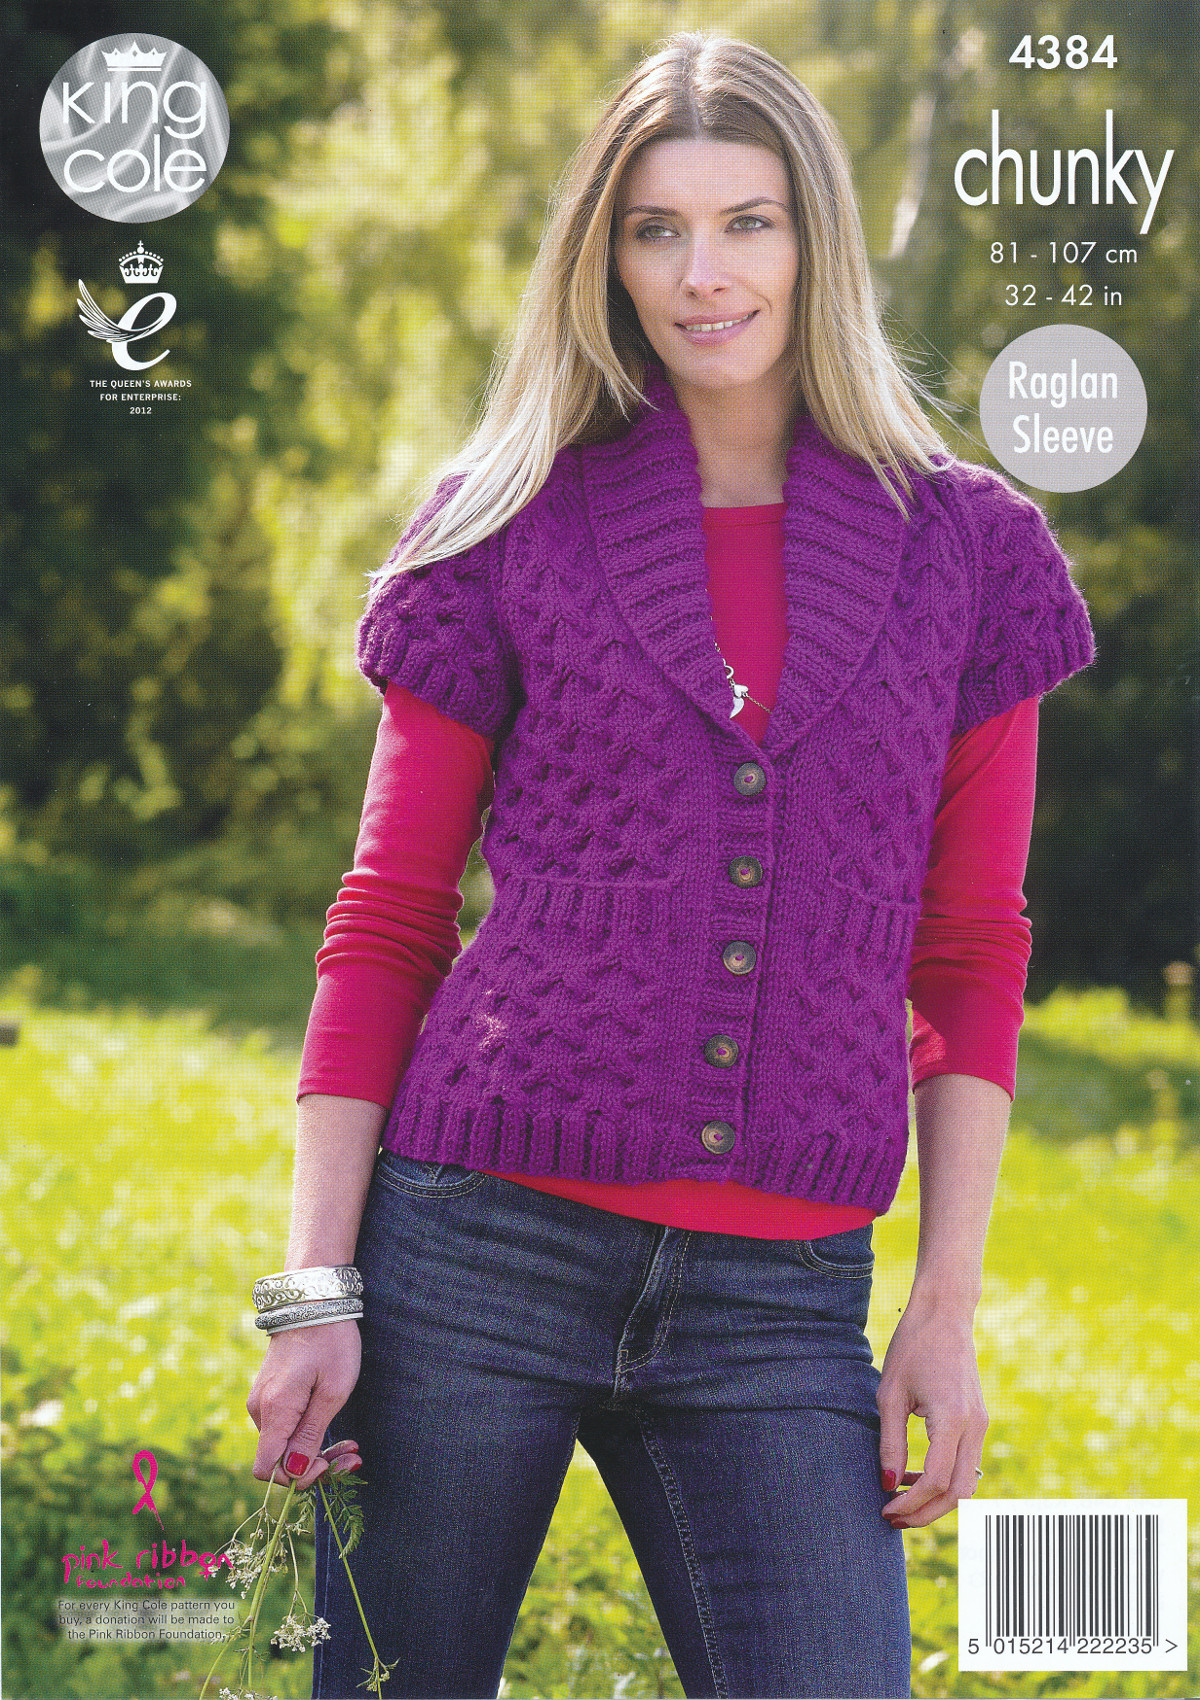 King cole ladies chunky knitting pattern raglan sleeve waistcoat the yarn illustrated is king cole big value chunky and is available to purchase on a separate listing bankloansurffo Gallery